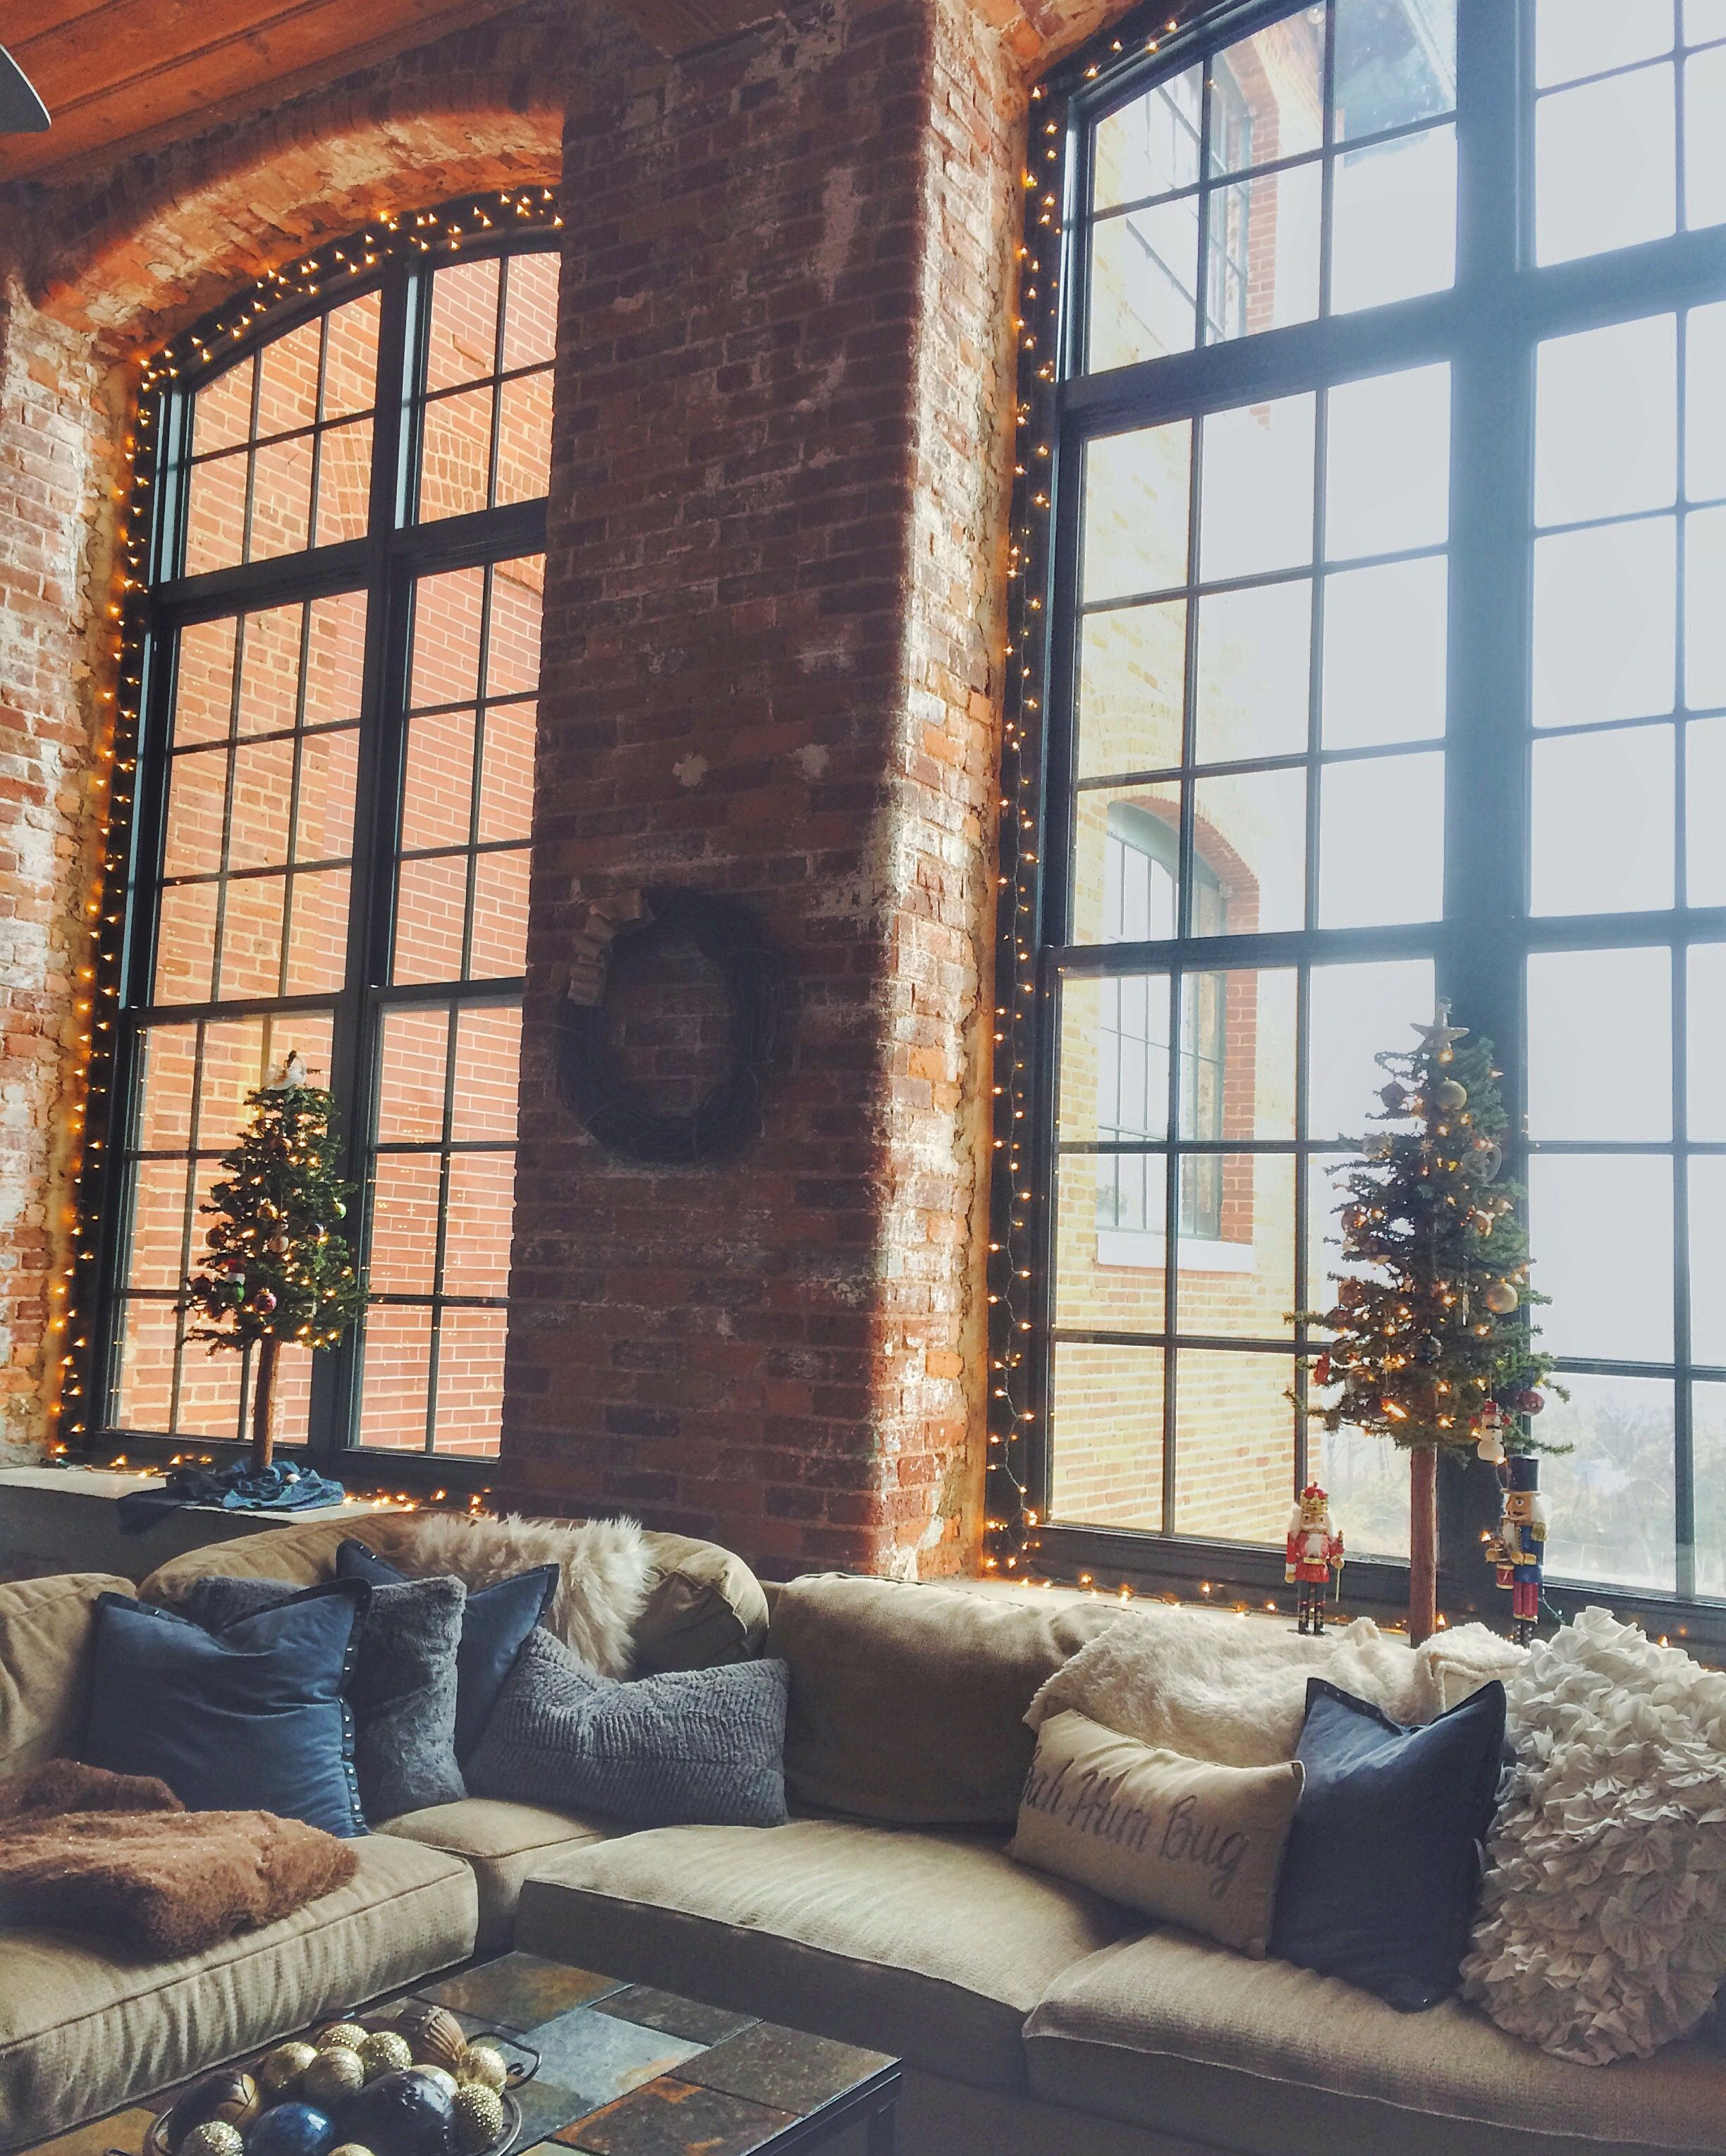 Awesome cozy apartment decor awesome cozy apartment decor exposed brick